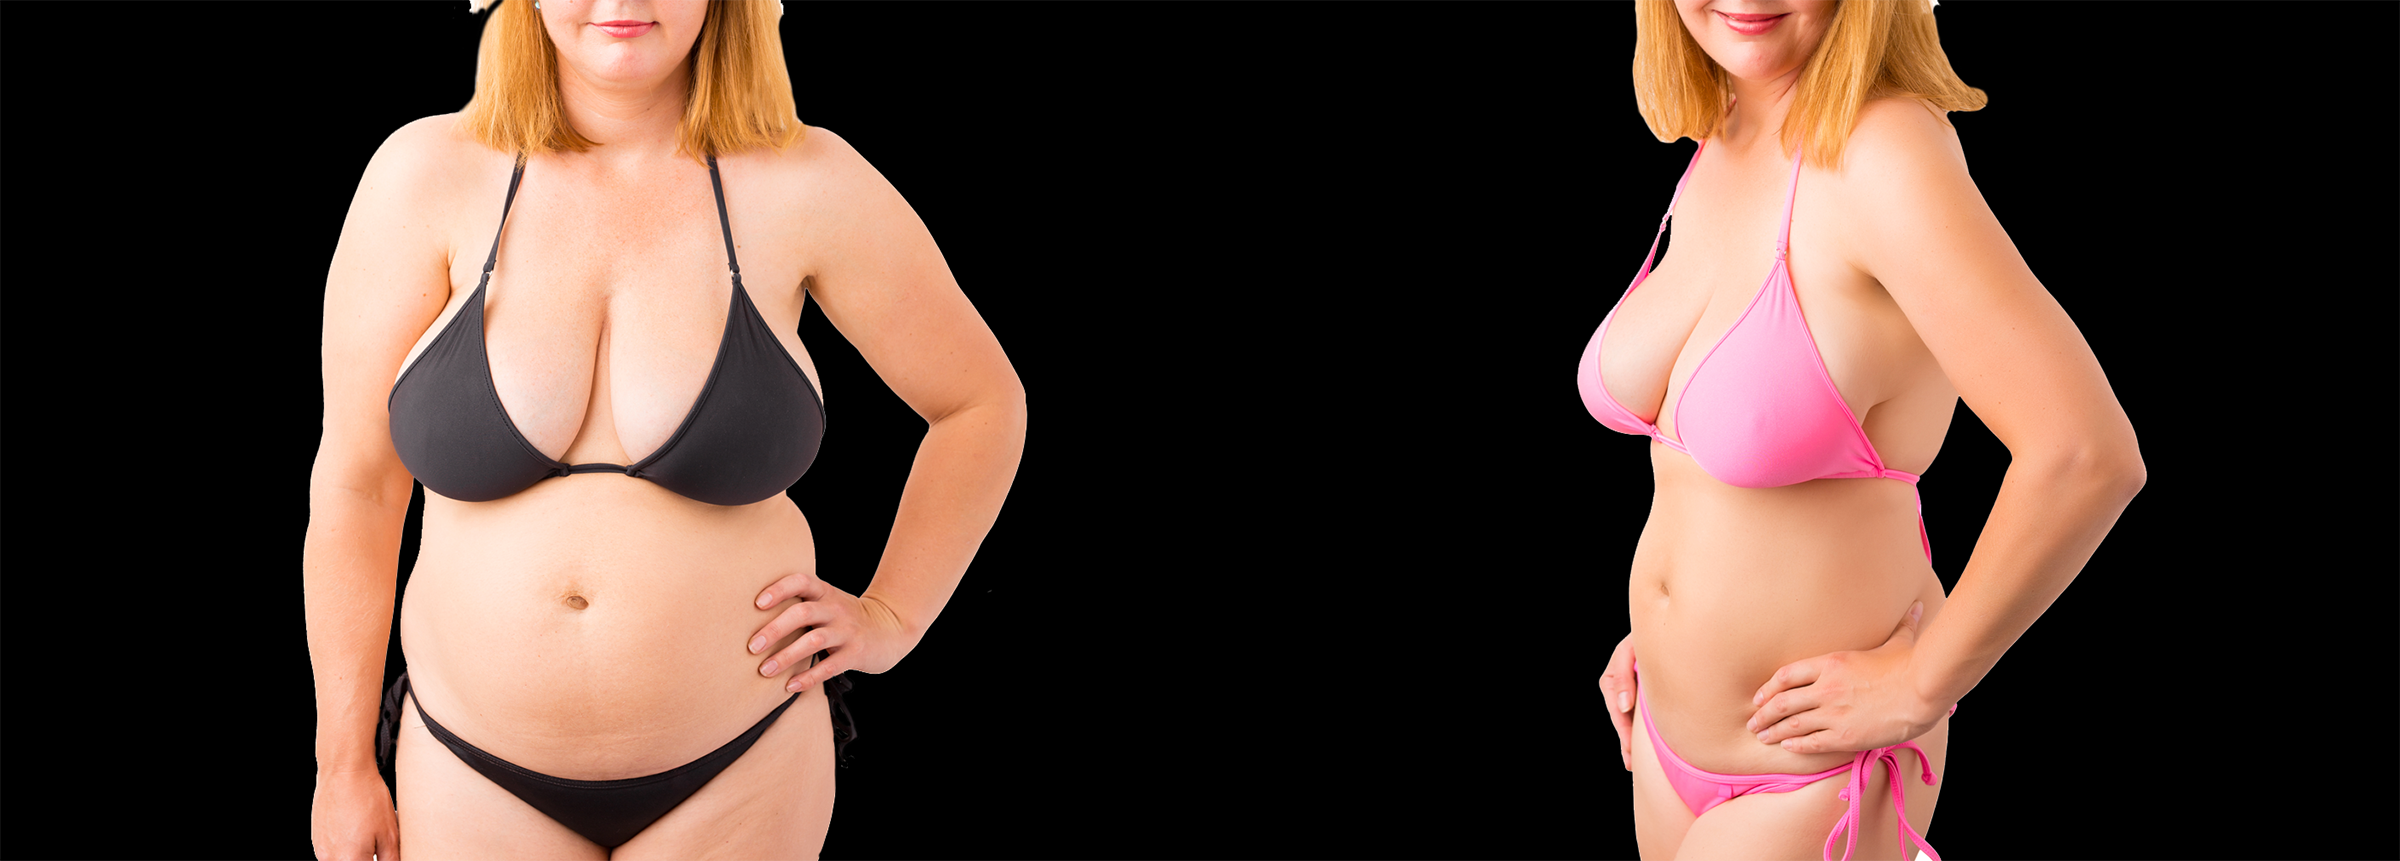 Long Island body reshaping before after